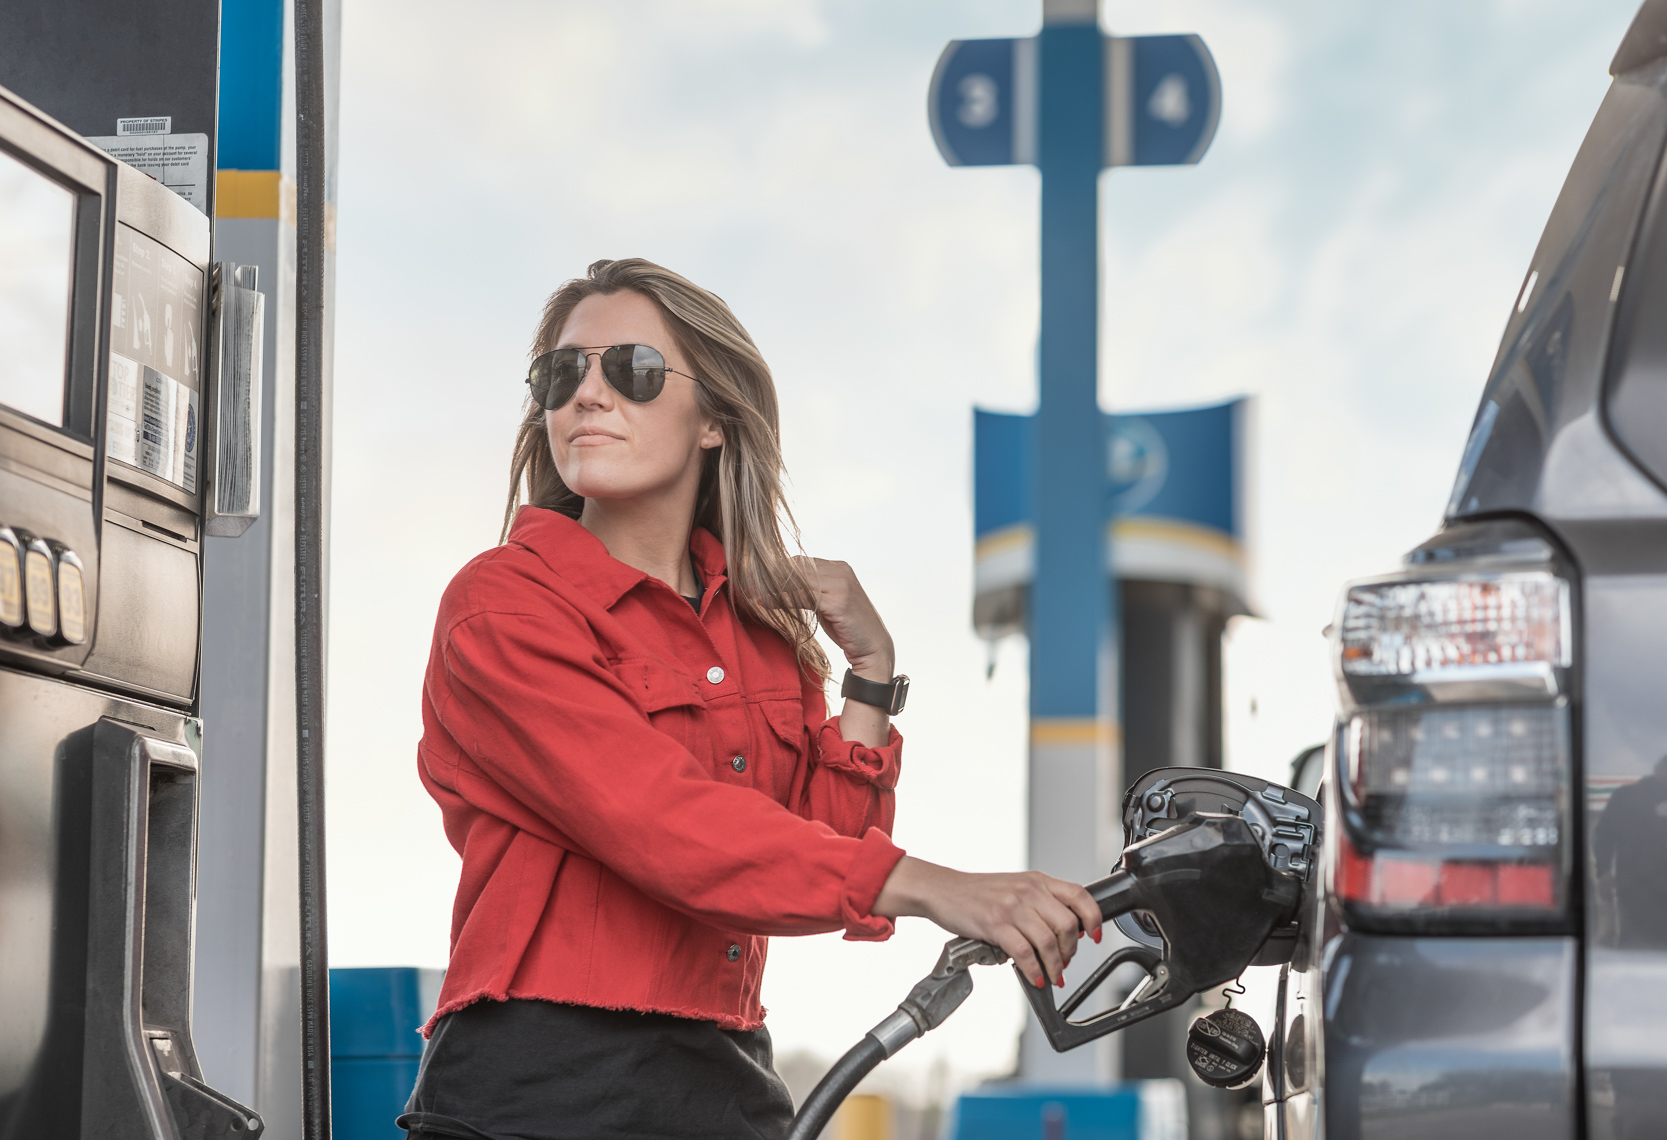 Lifestyle Photo of Women Pumping Gas at Valero Station - Jason Risner Photography